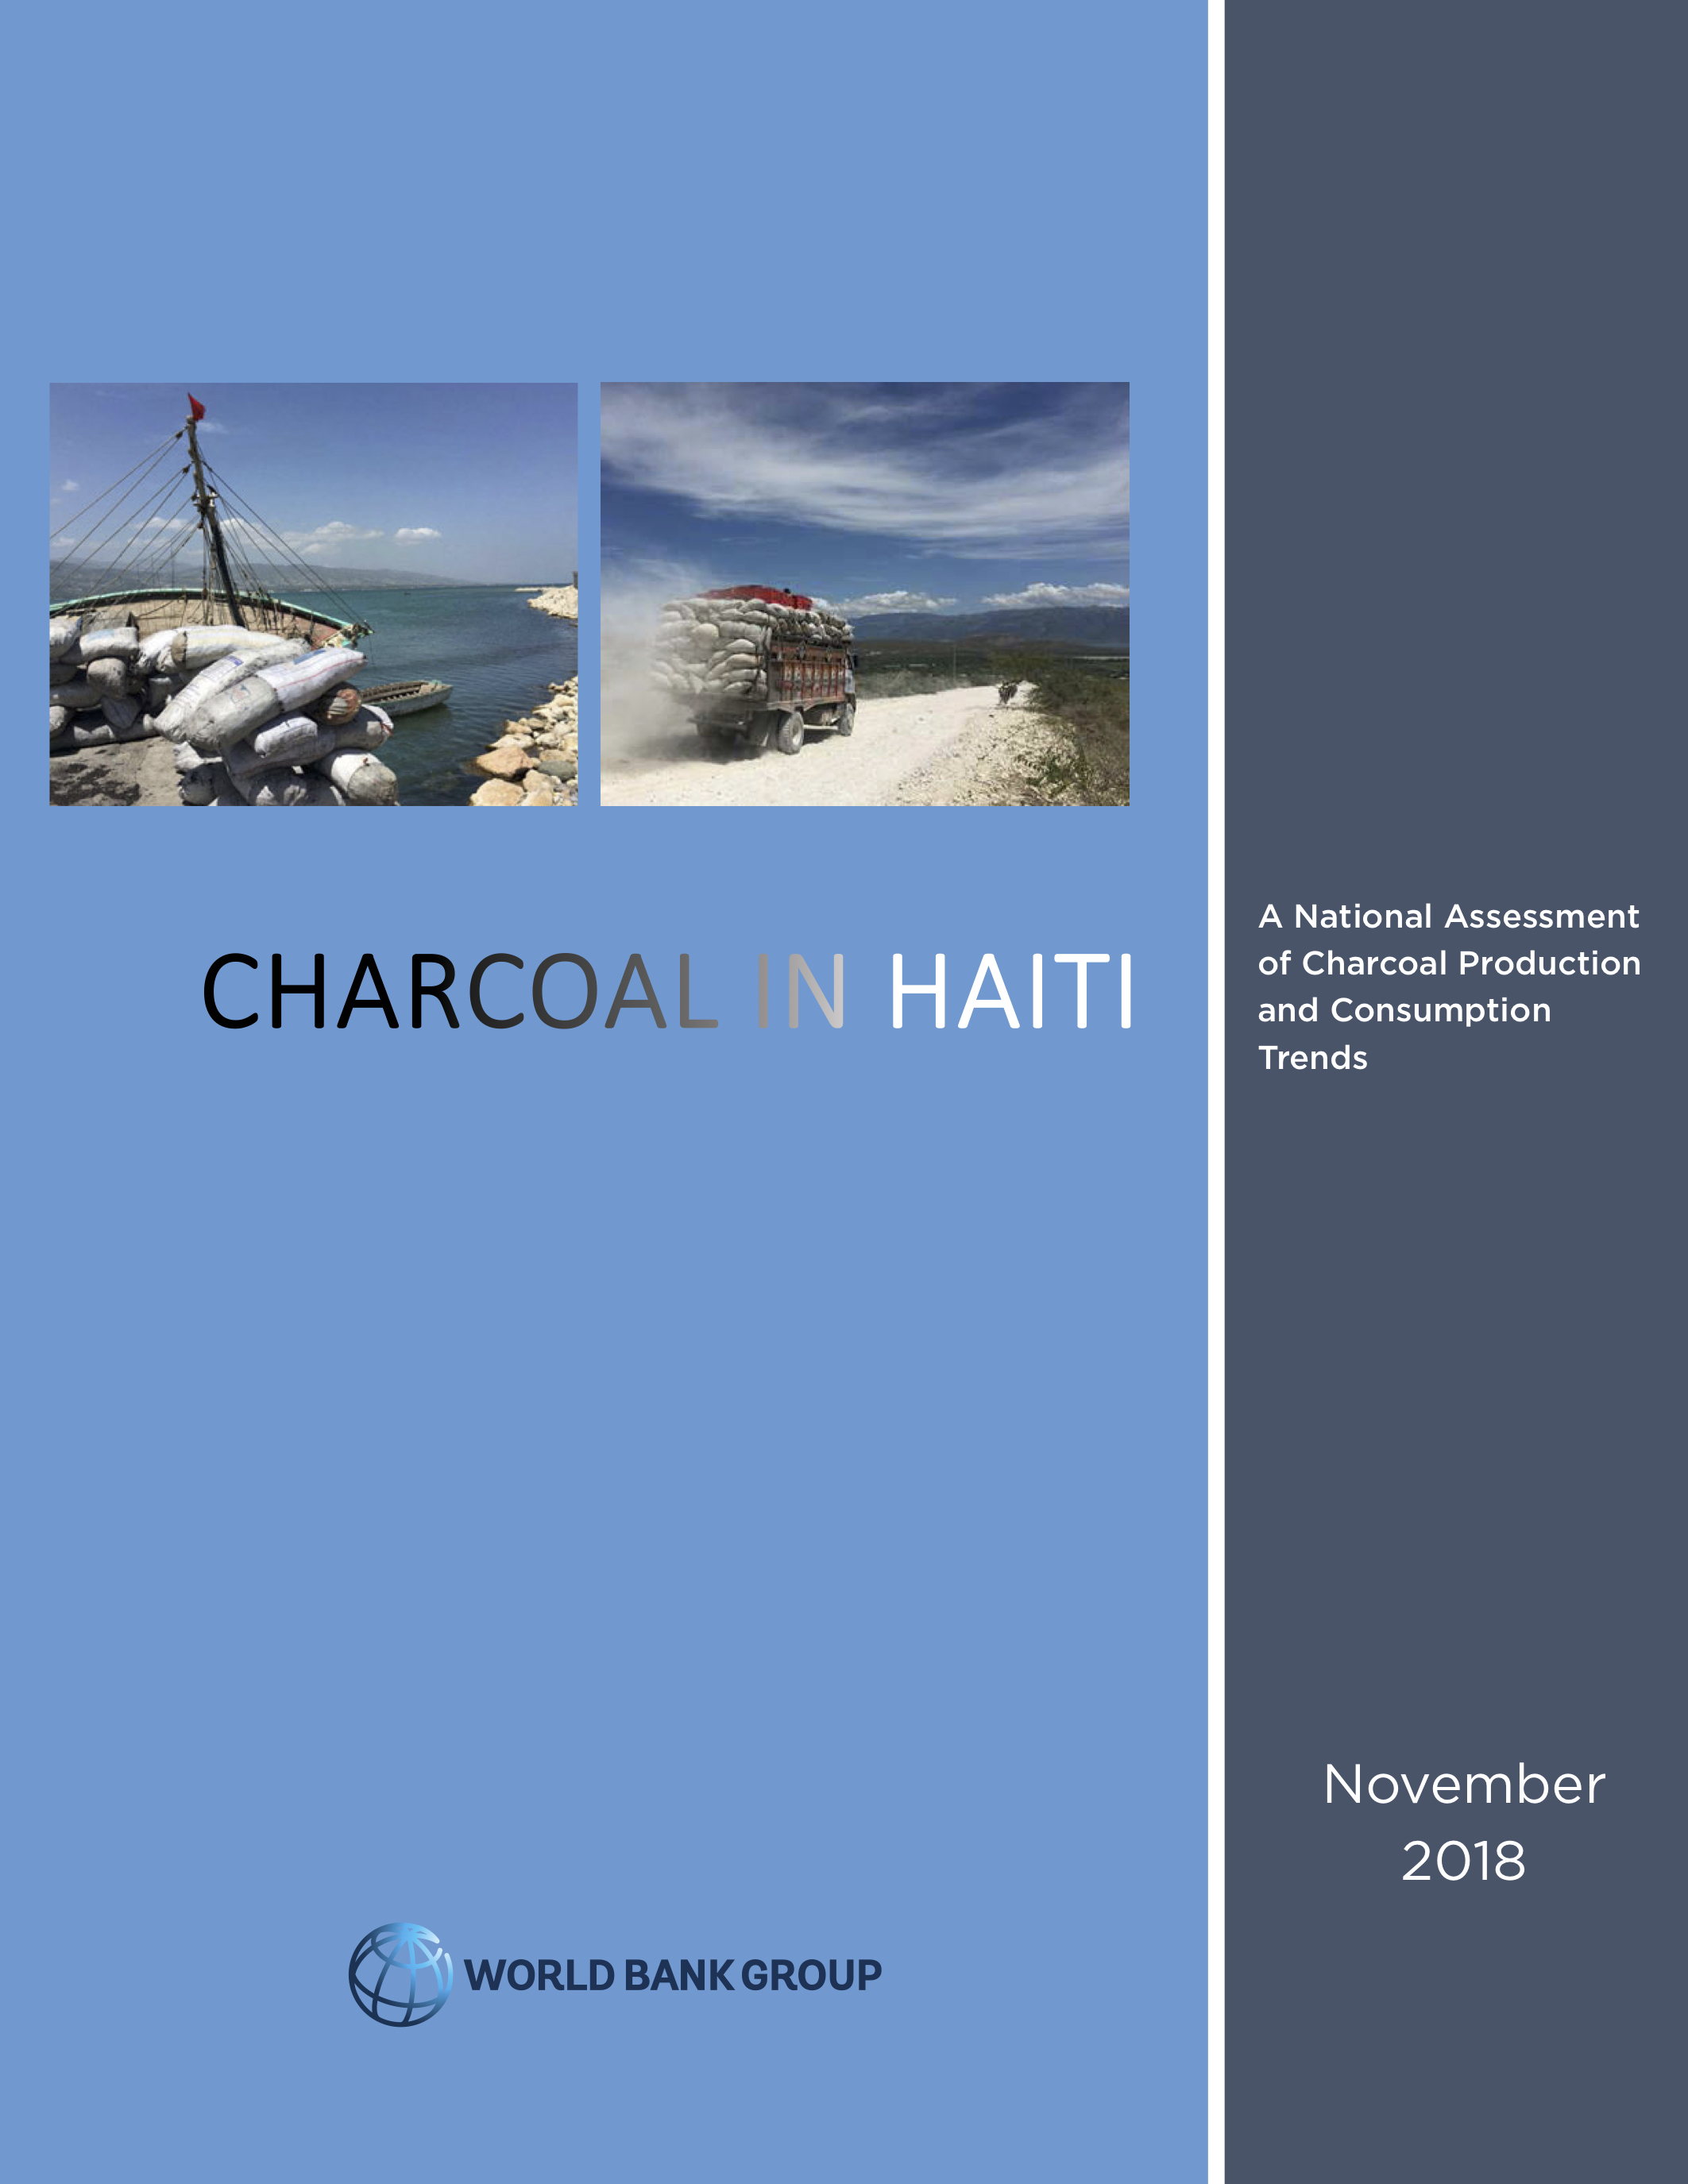 Andrew Tarter - Charcoal Production and Consumption in Haiti - World Bank Report